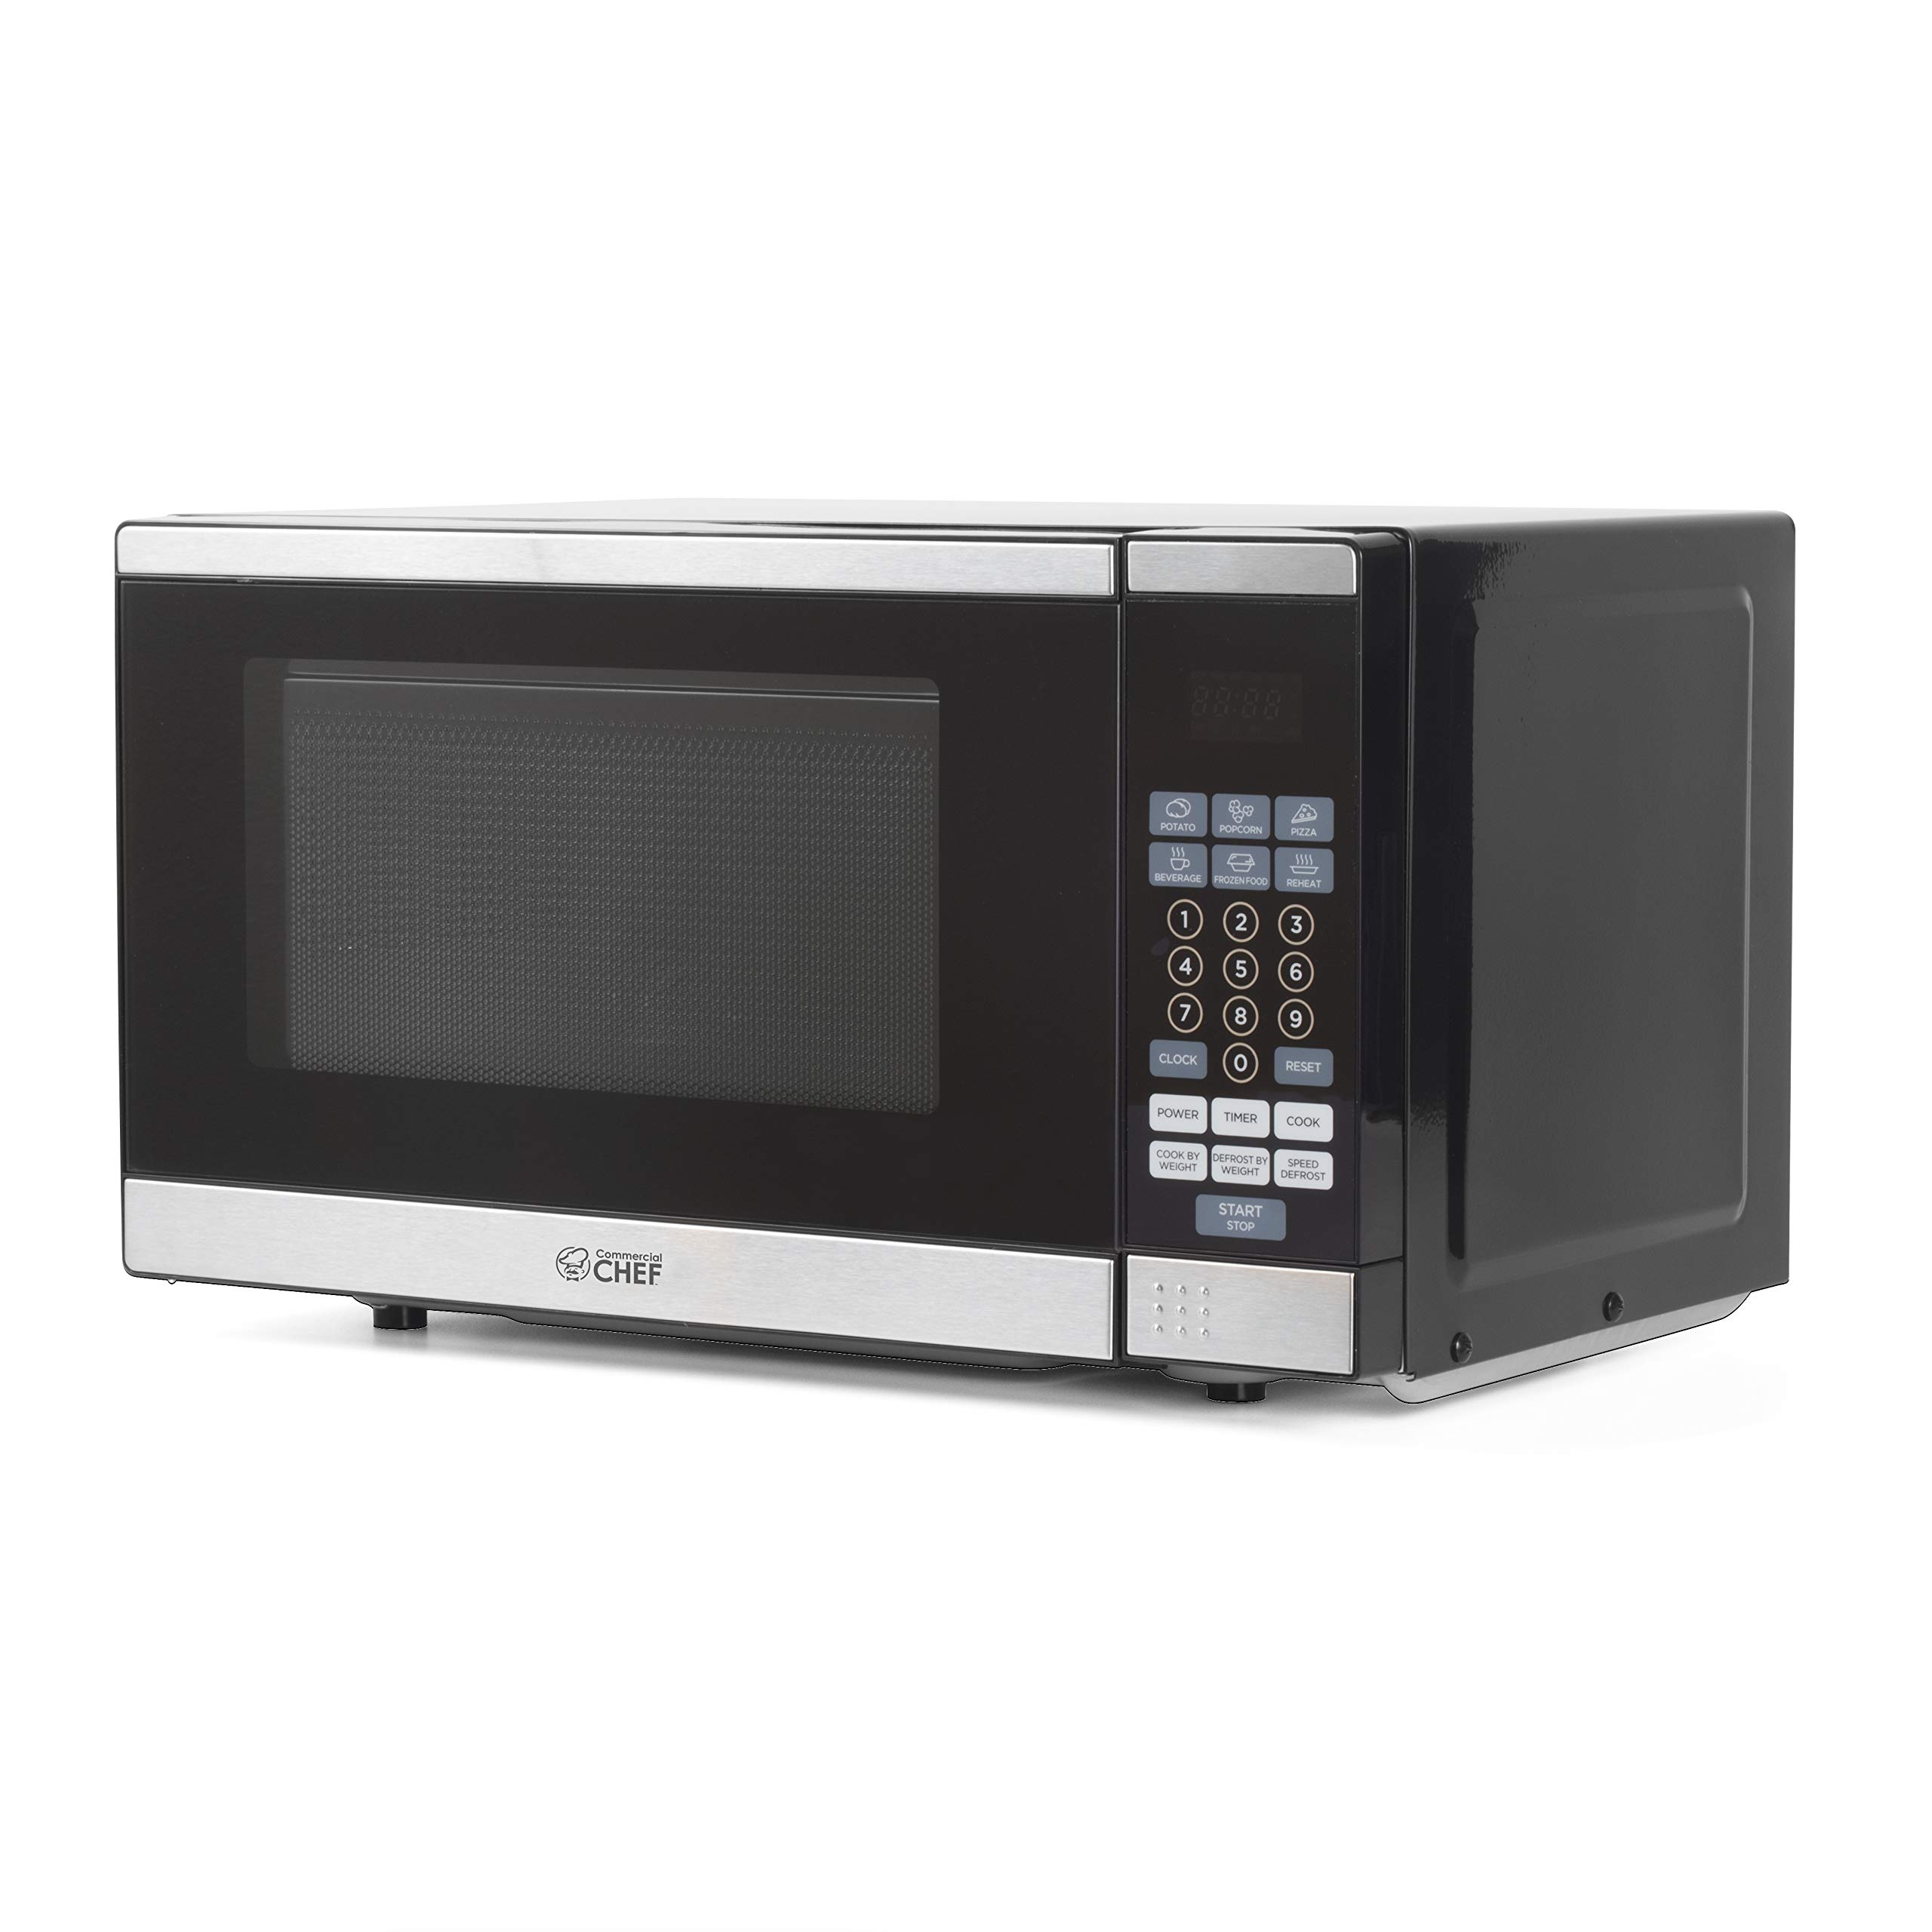 Westinghouse WCM770SS Microwave 0 7Cubic Stainless